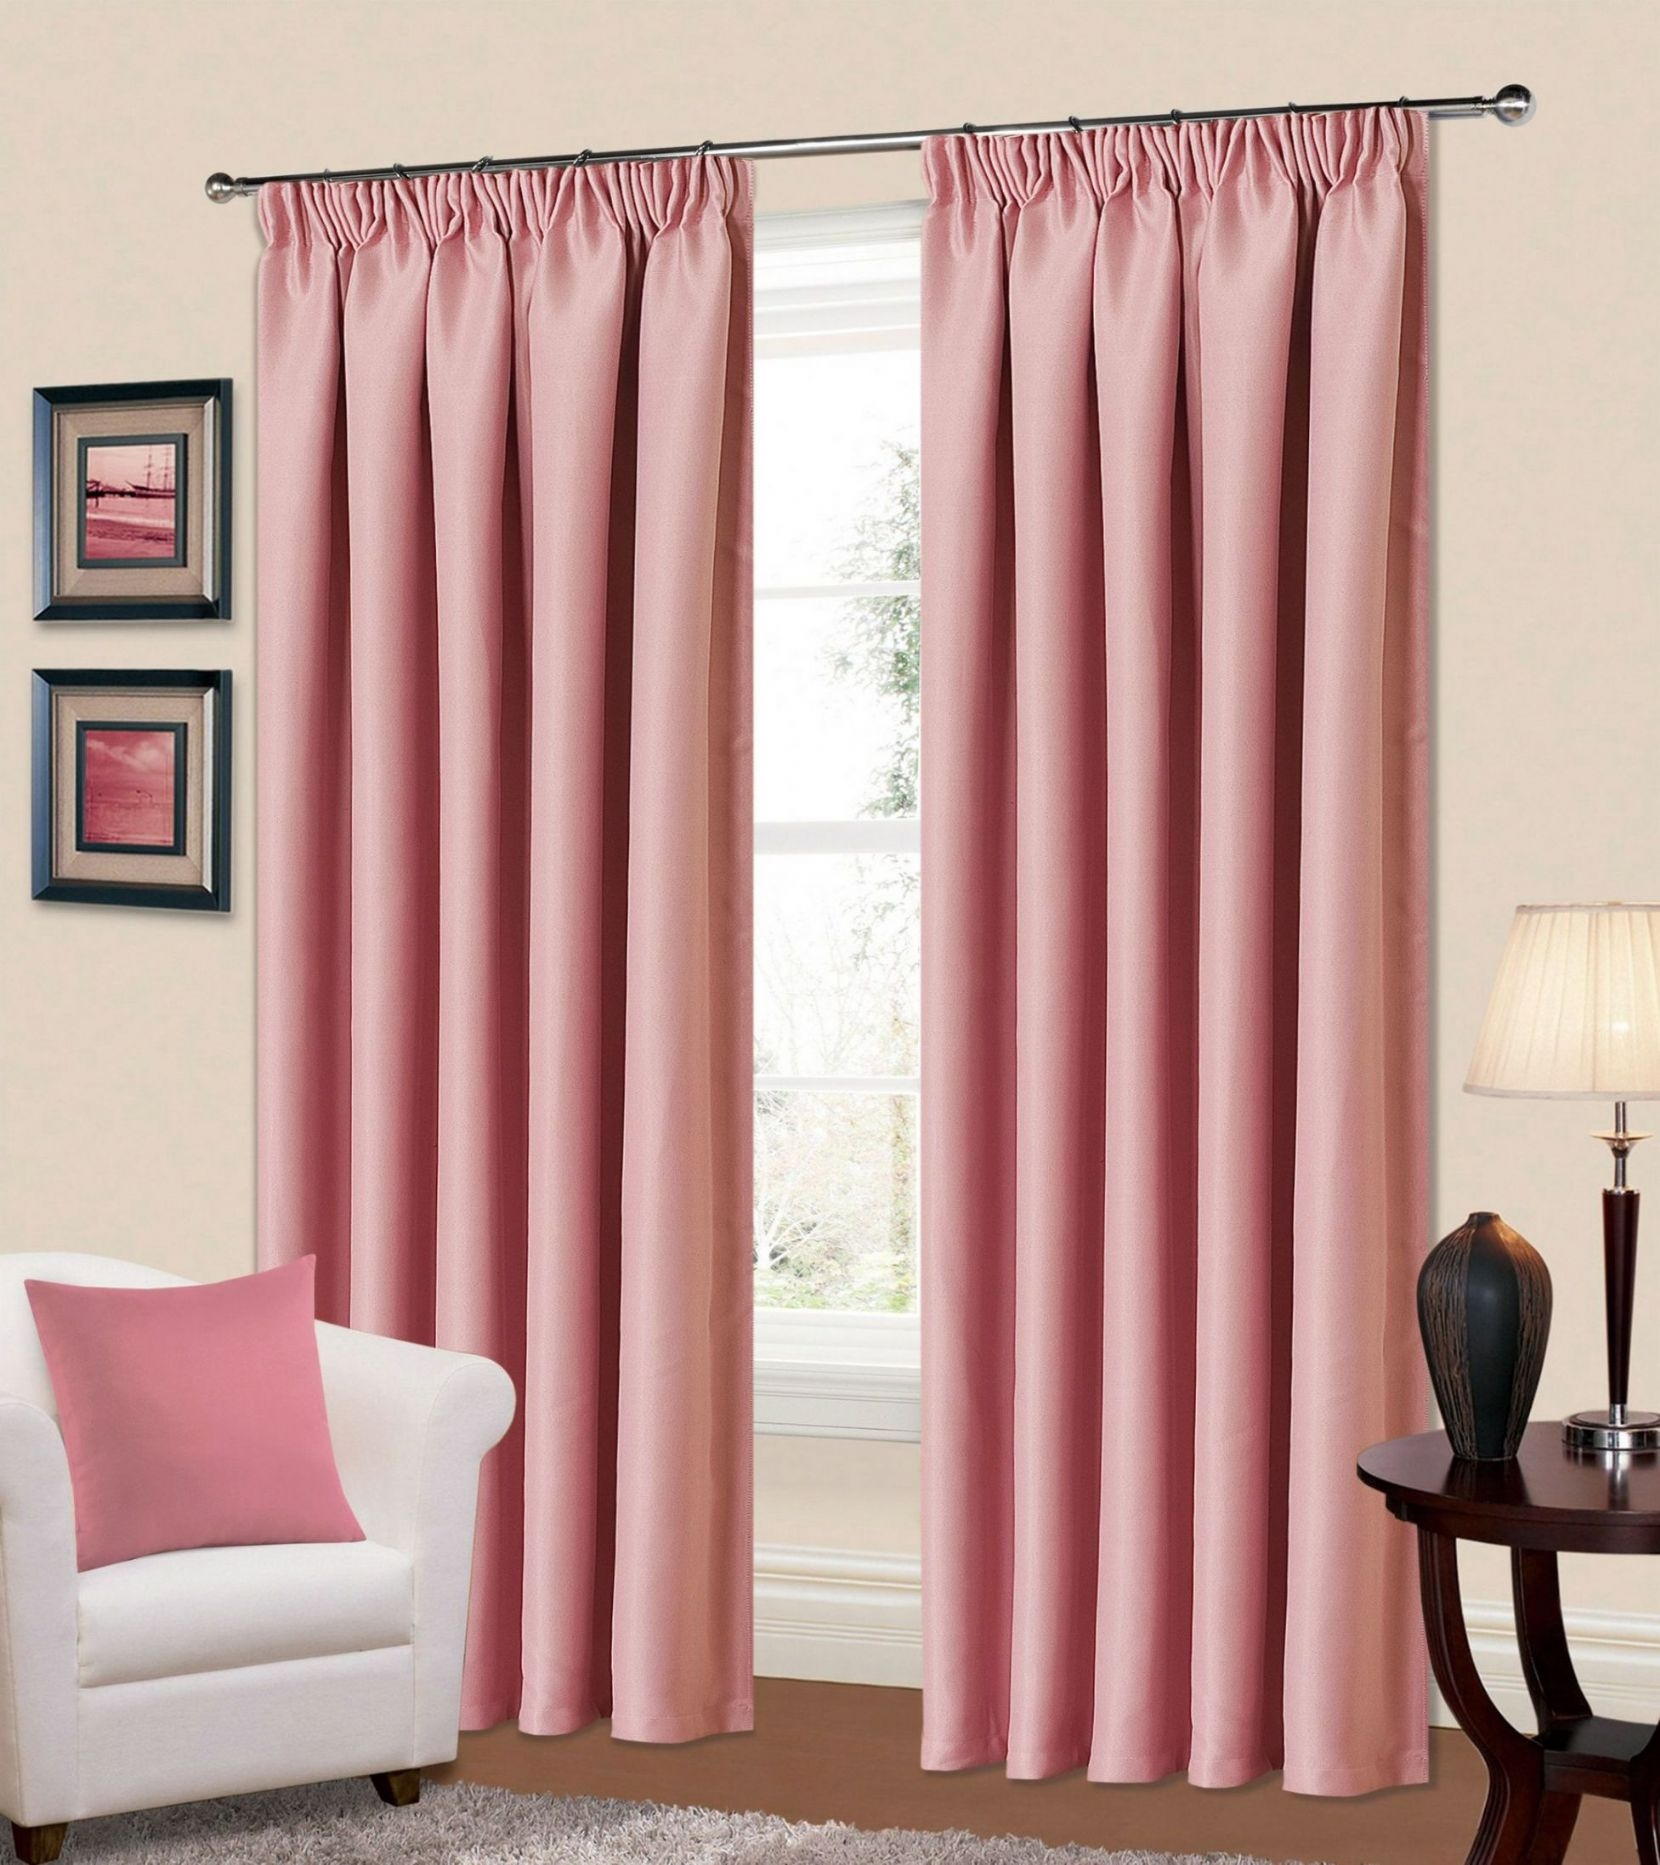 Ready Made Sheer Curtains Online 25 43 Asian Curtains Drapes Curtain Ideas